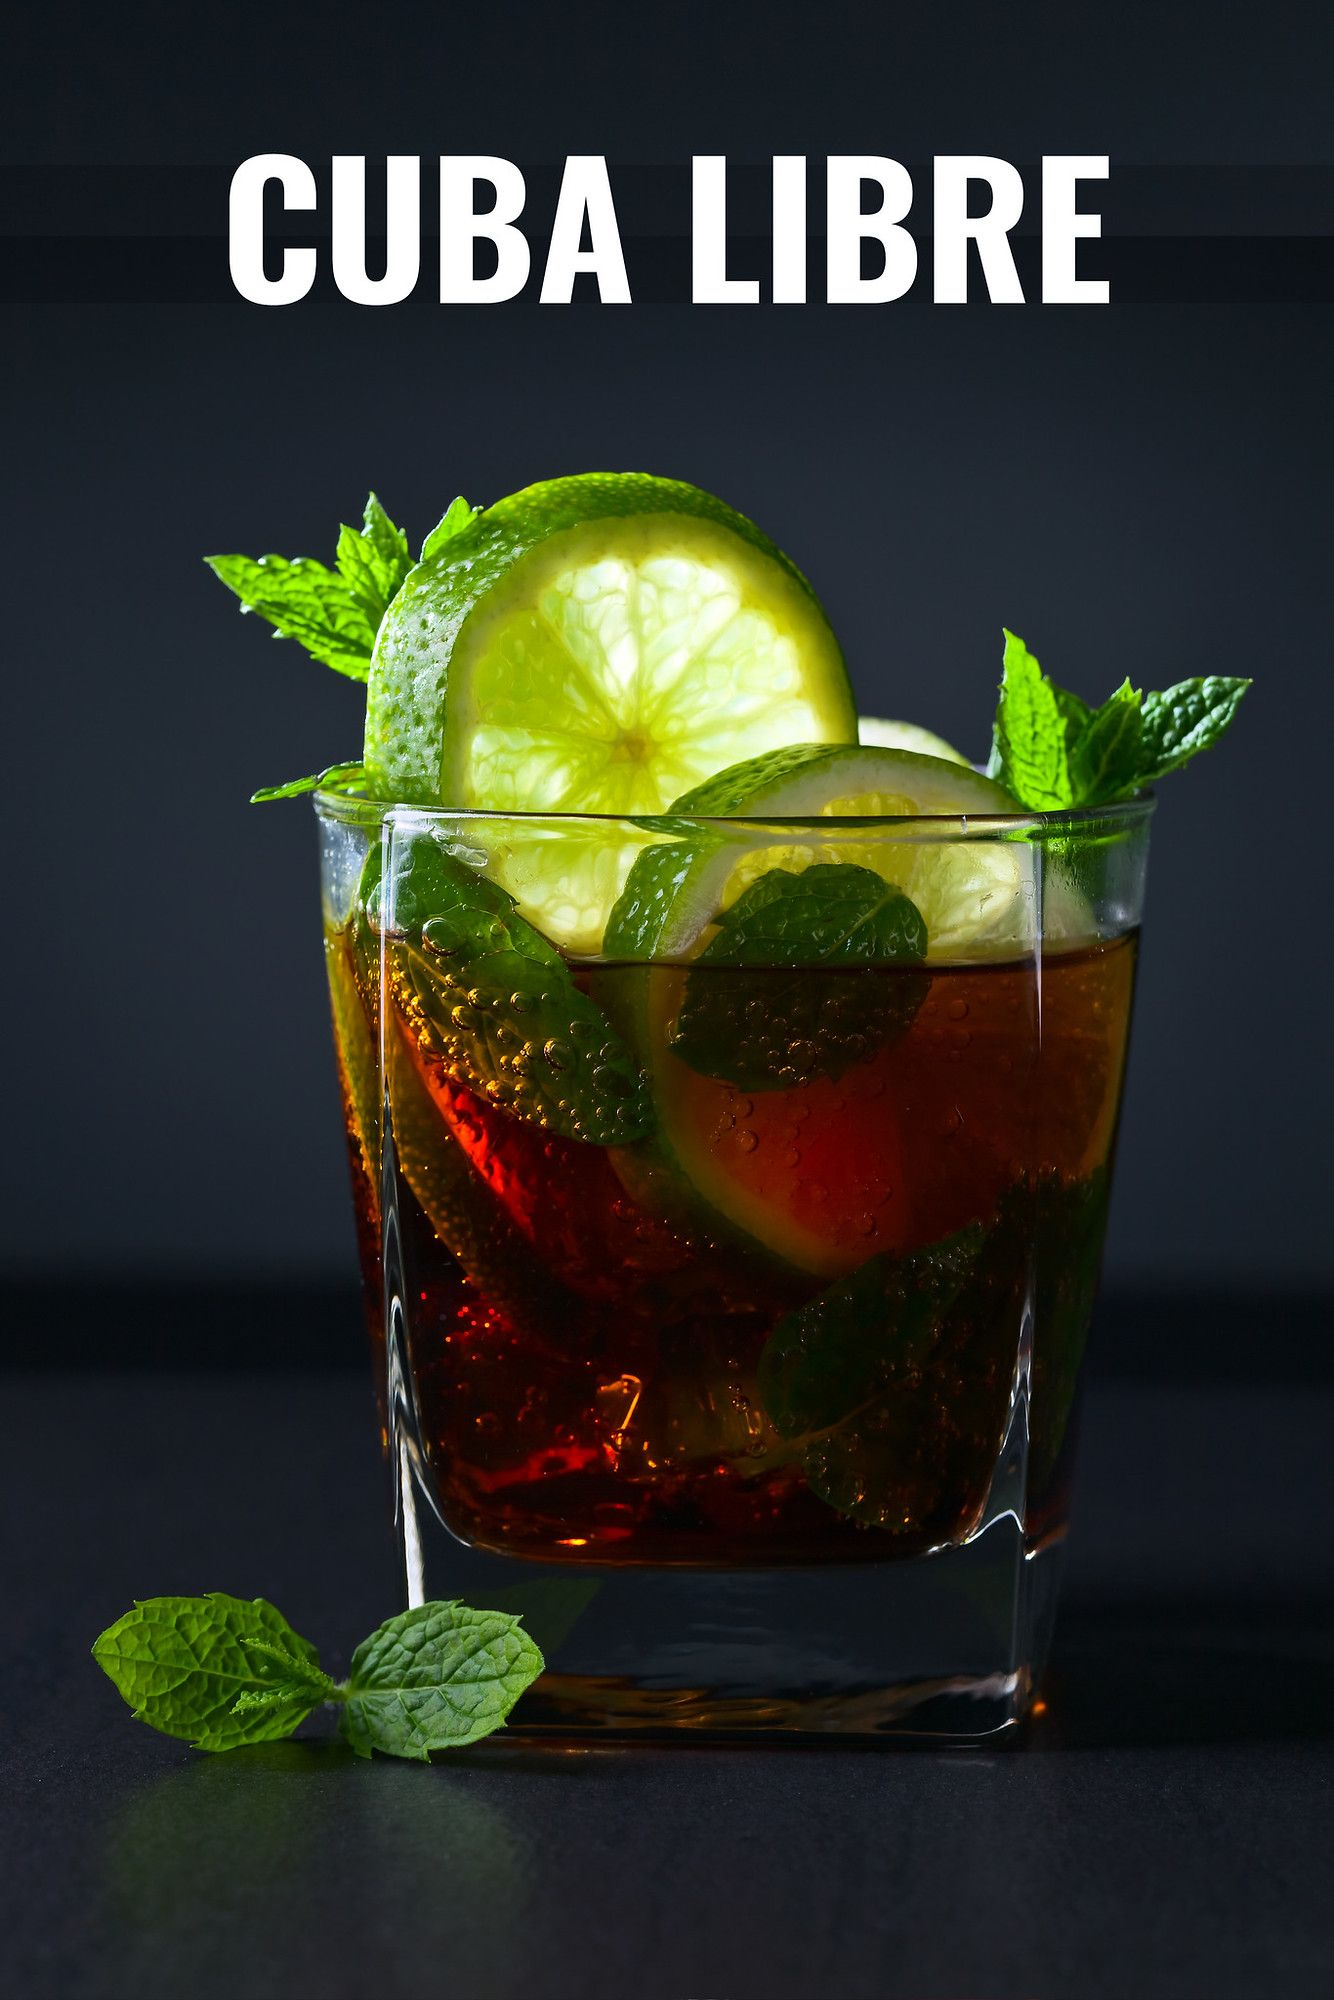 The Cuba libre cocktail isn't just rum and Coke, it also comes with a fascinating history. You'd be surprised who named it and why. #cubalibre